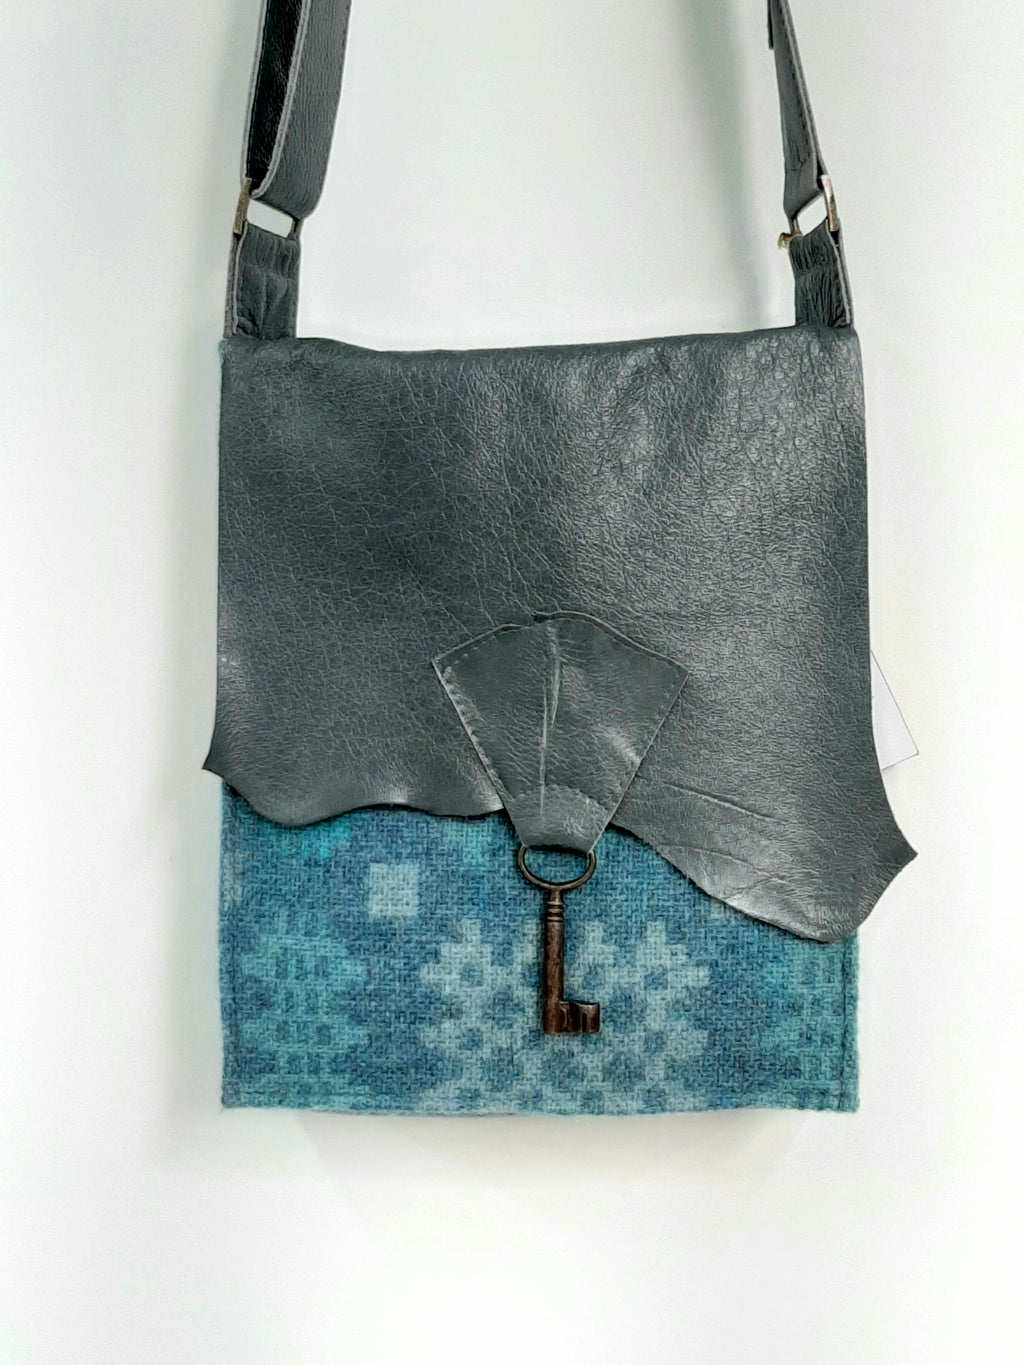 Raw Edge Leather & Welsh Wool Bag with Vintage Key Detail - Bluestone & Teal